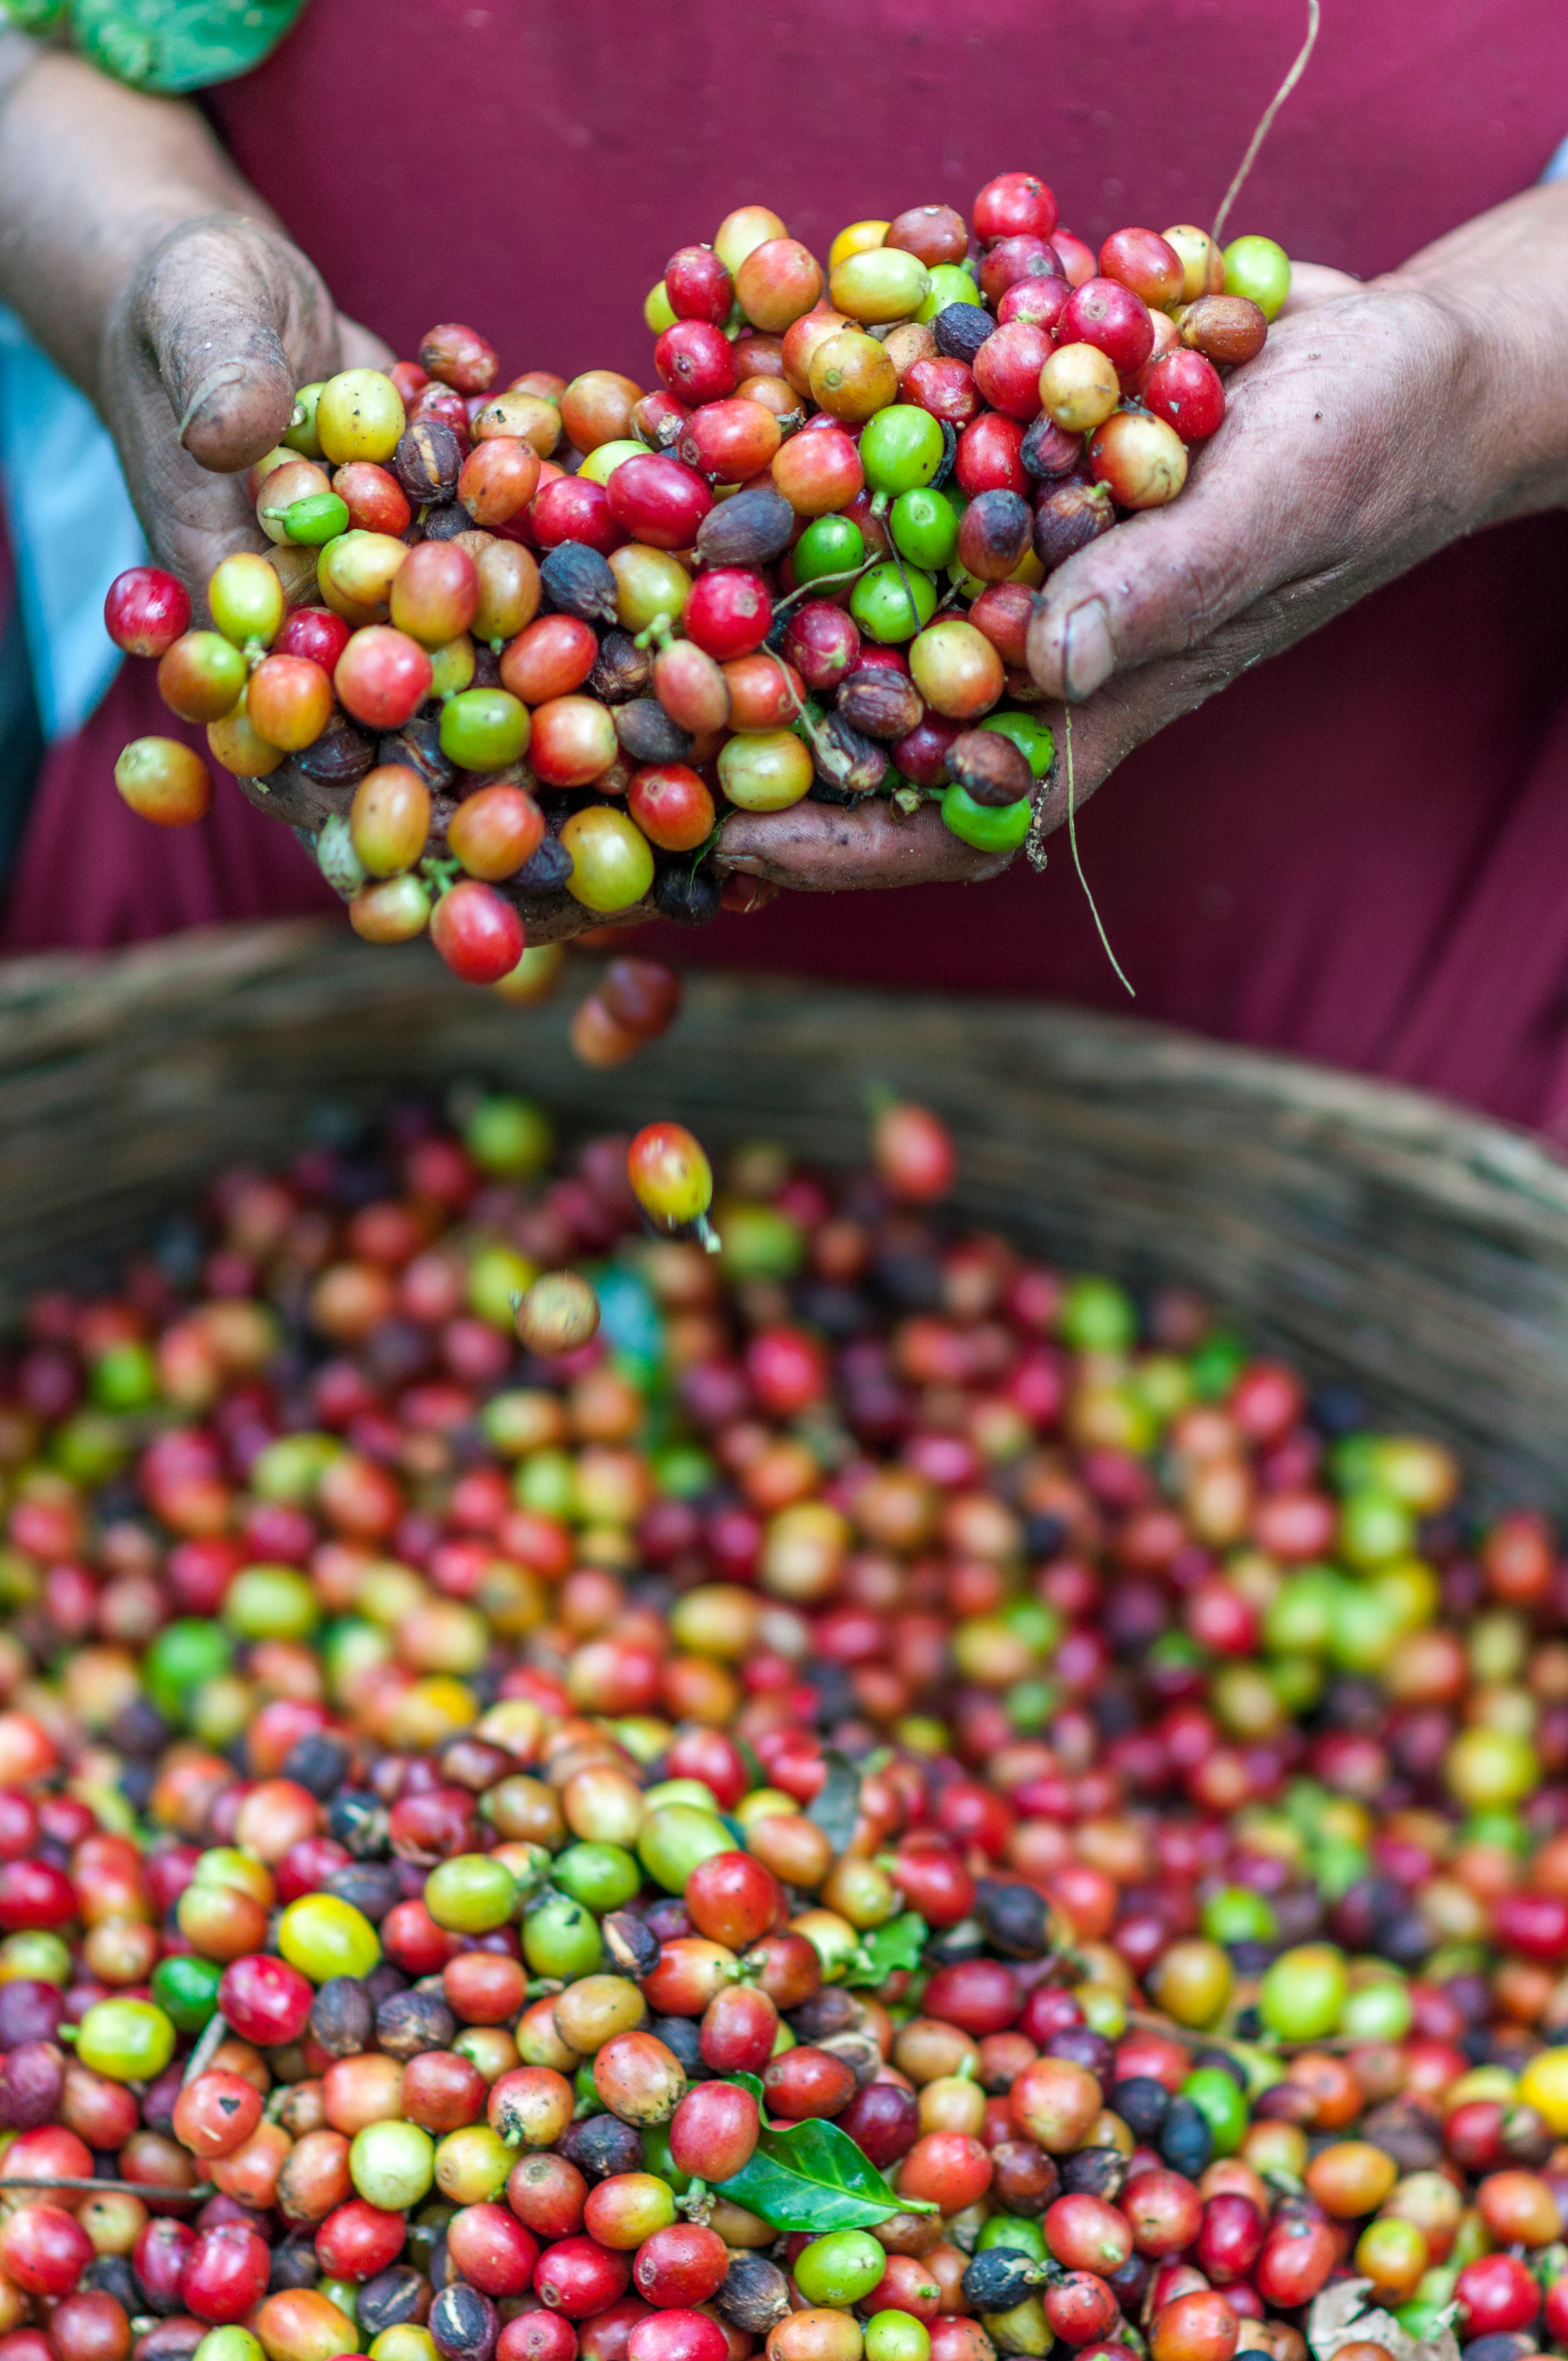 Brazil and Colombia Meet to Address Coffee Price Crisis – coffee t&i